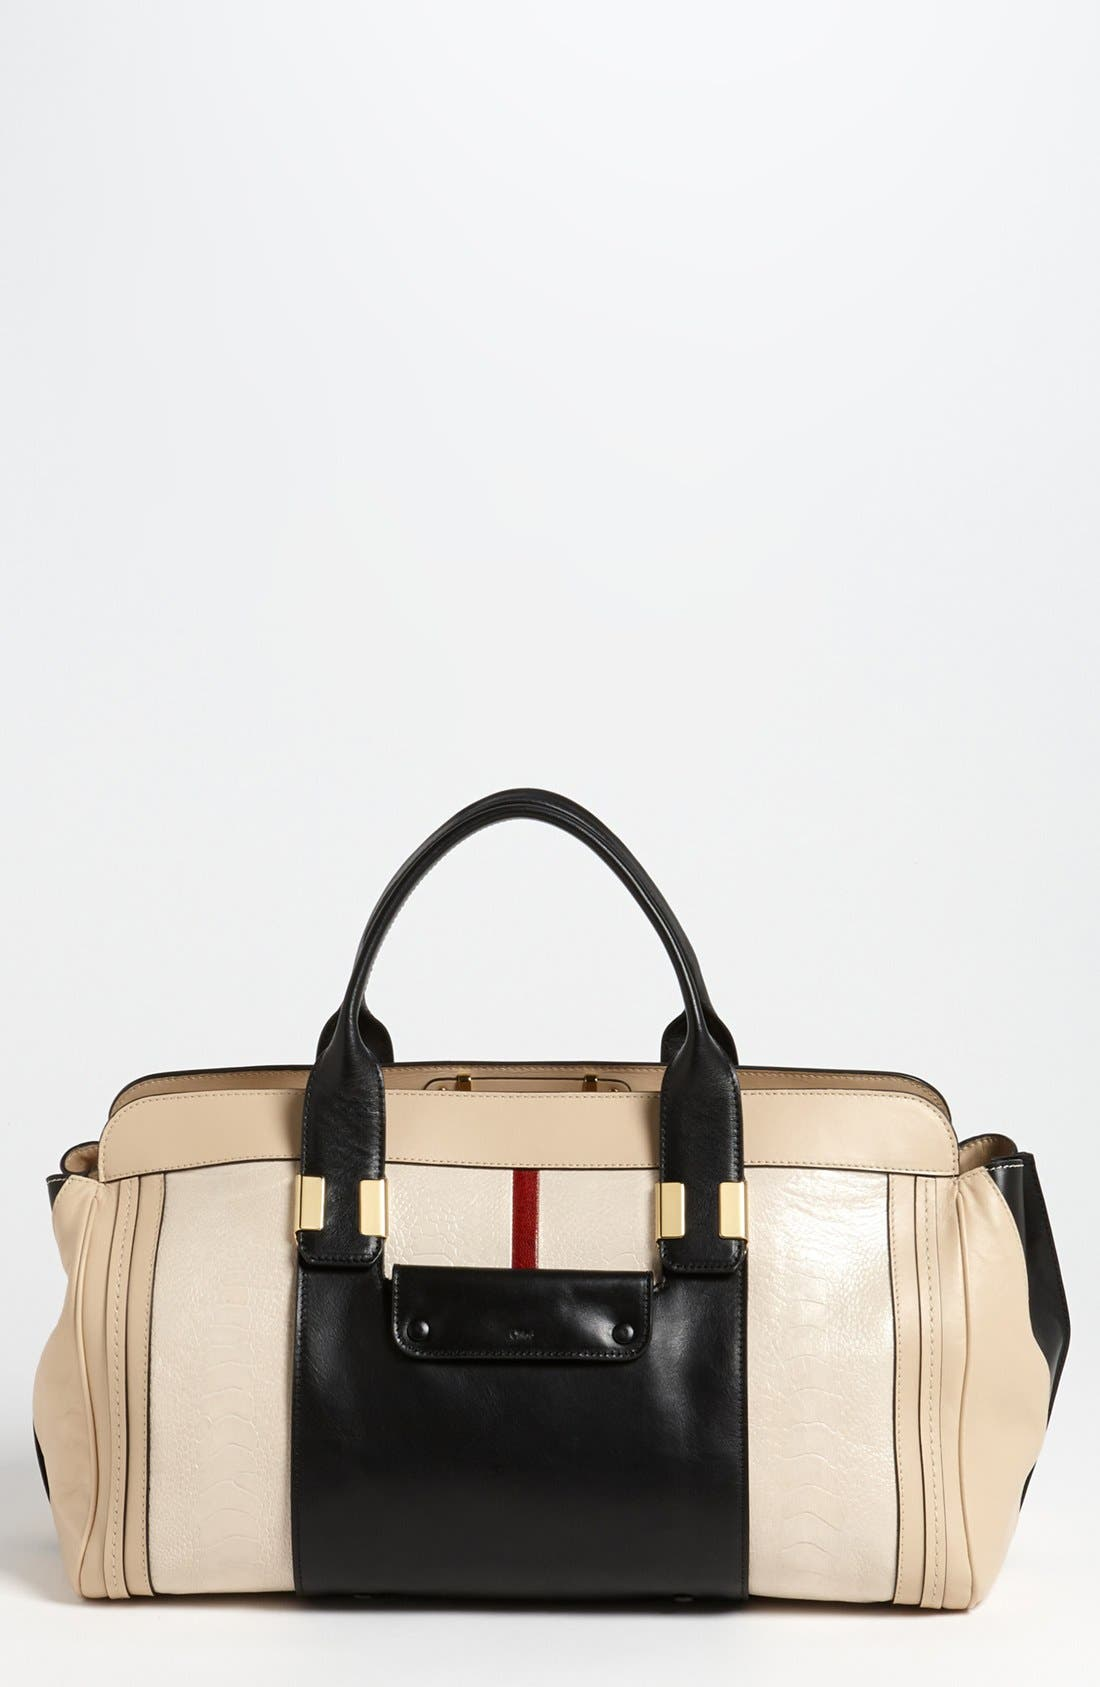 Alternate Image 1 Selected - Chloé 'Alice - Medium' Ostrich Leather Satchel